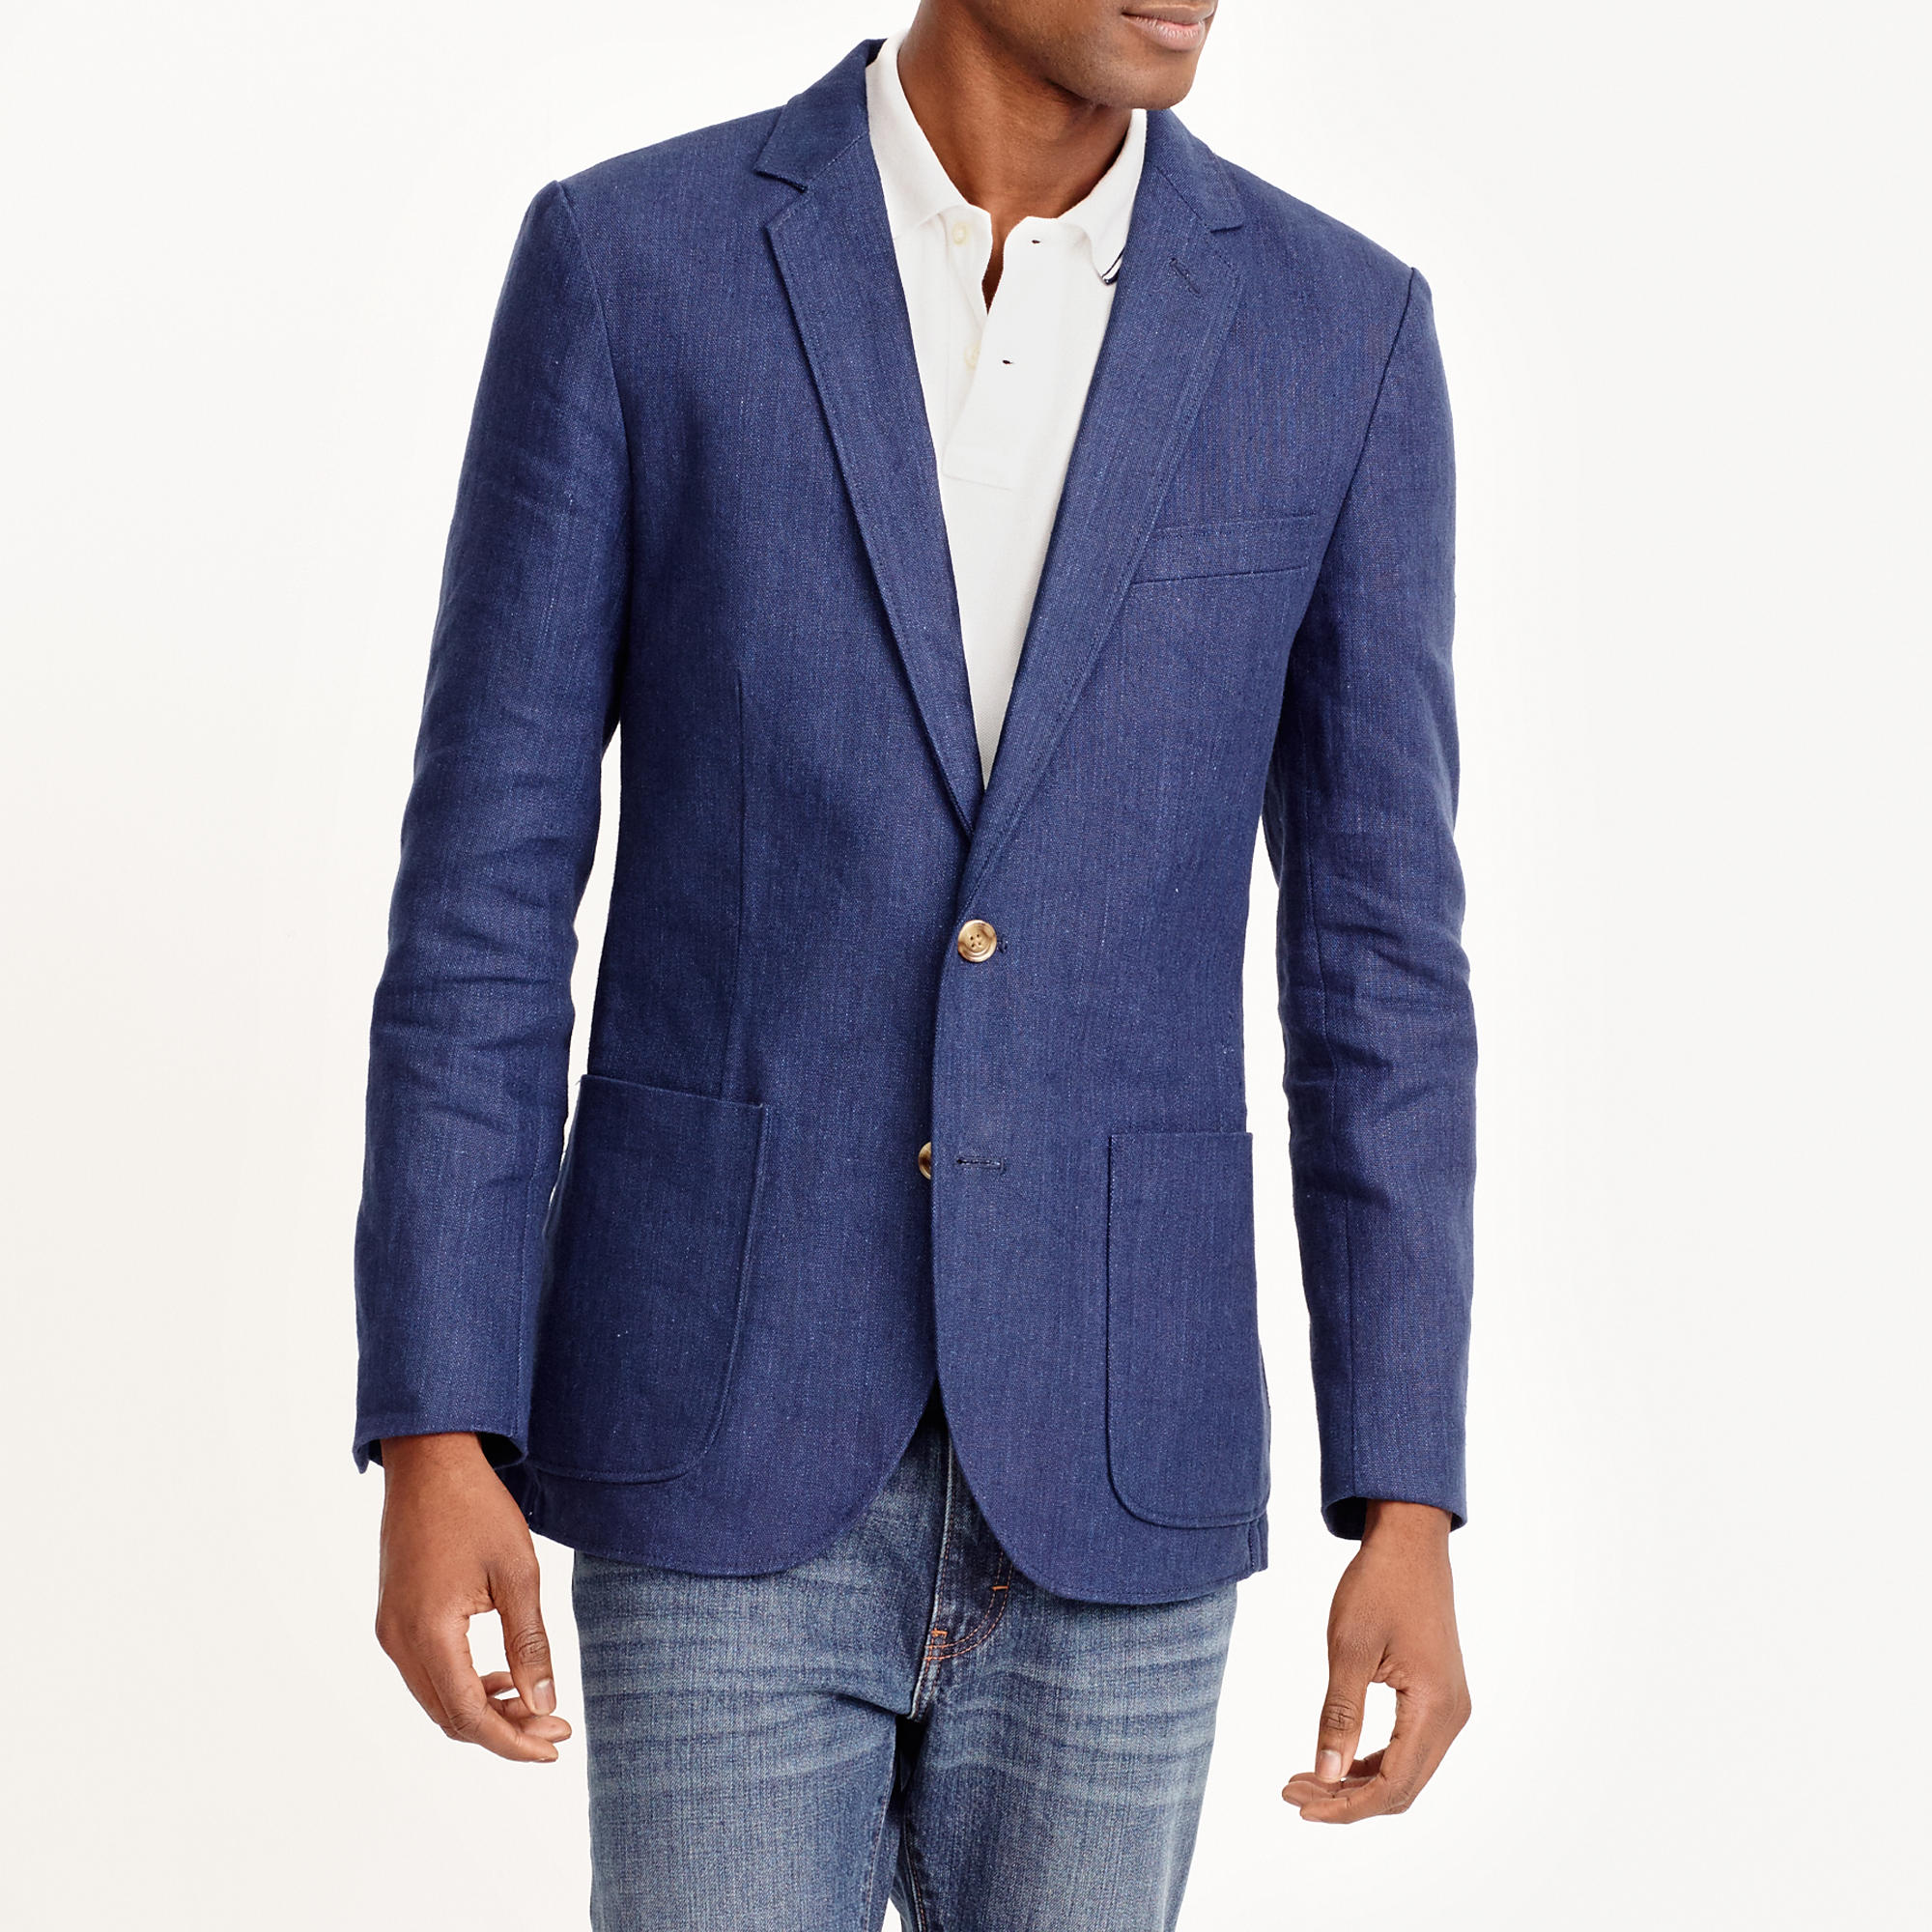 dapper-advisor-affordable-spring-summer-blazers-4